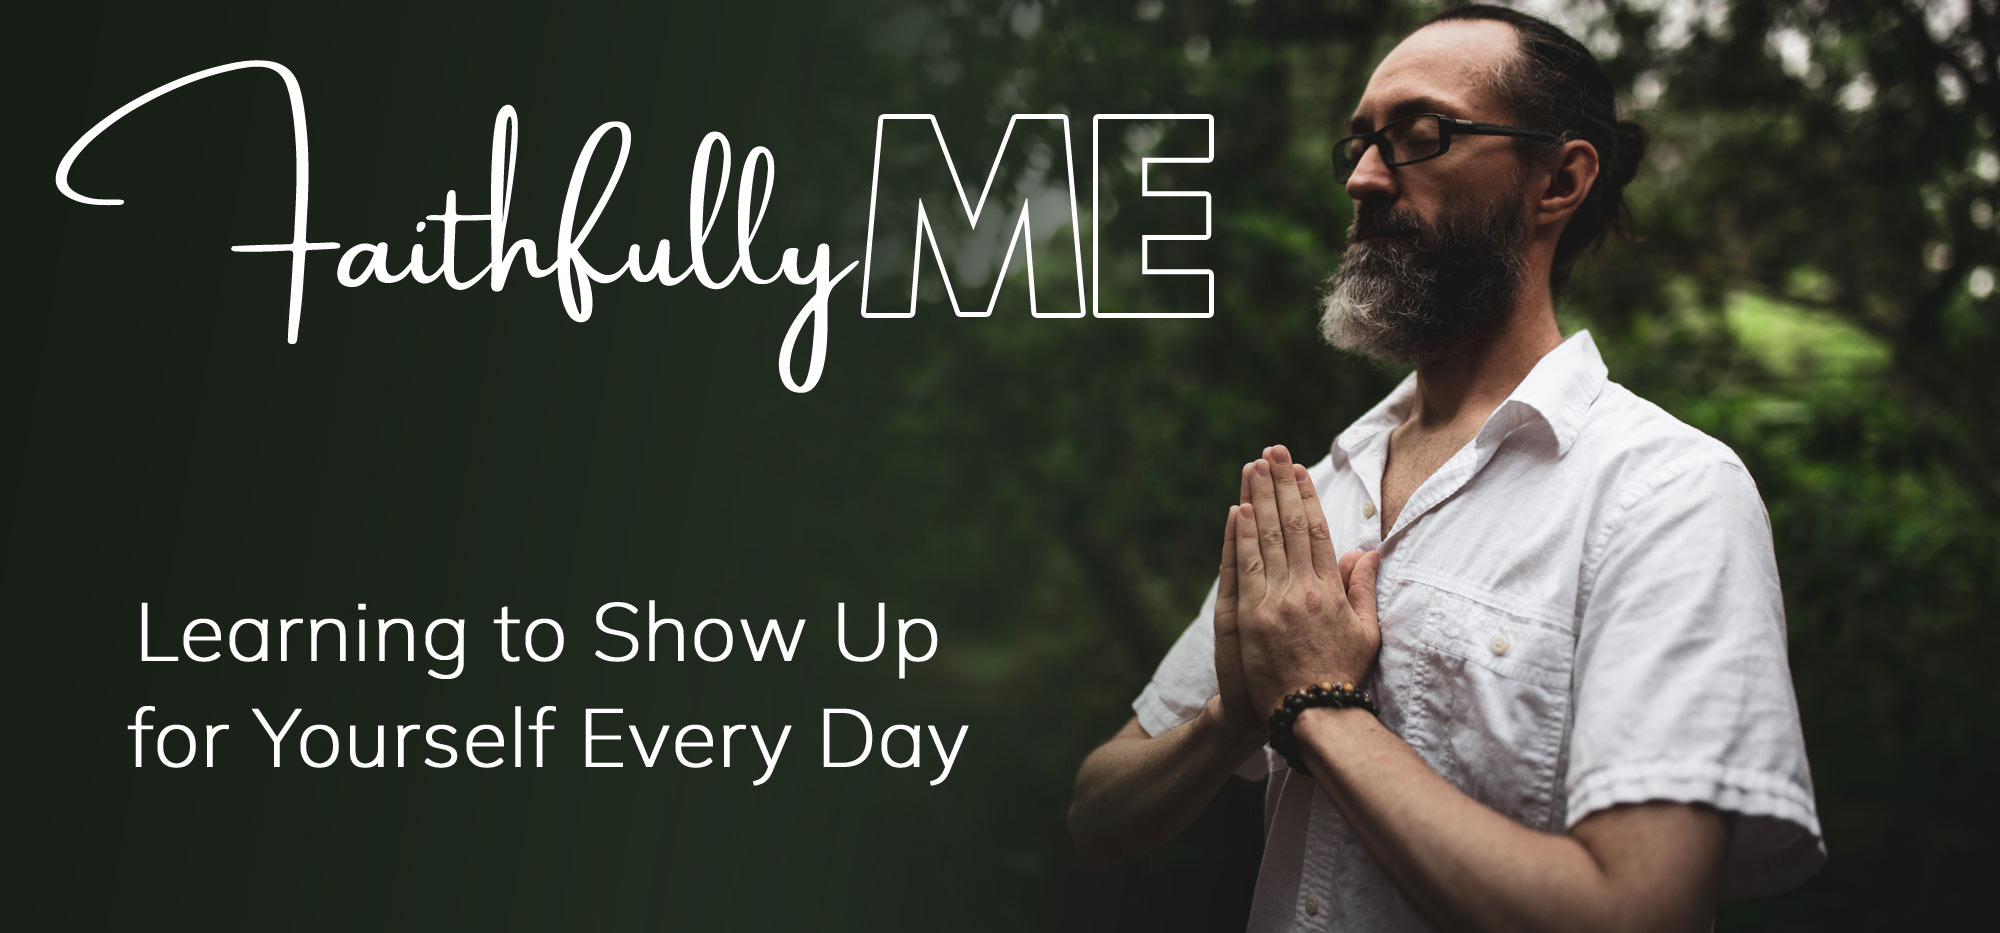 FaithfullyME: Learning to Show Up for Yourself Every Day